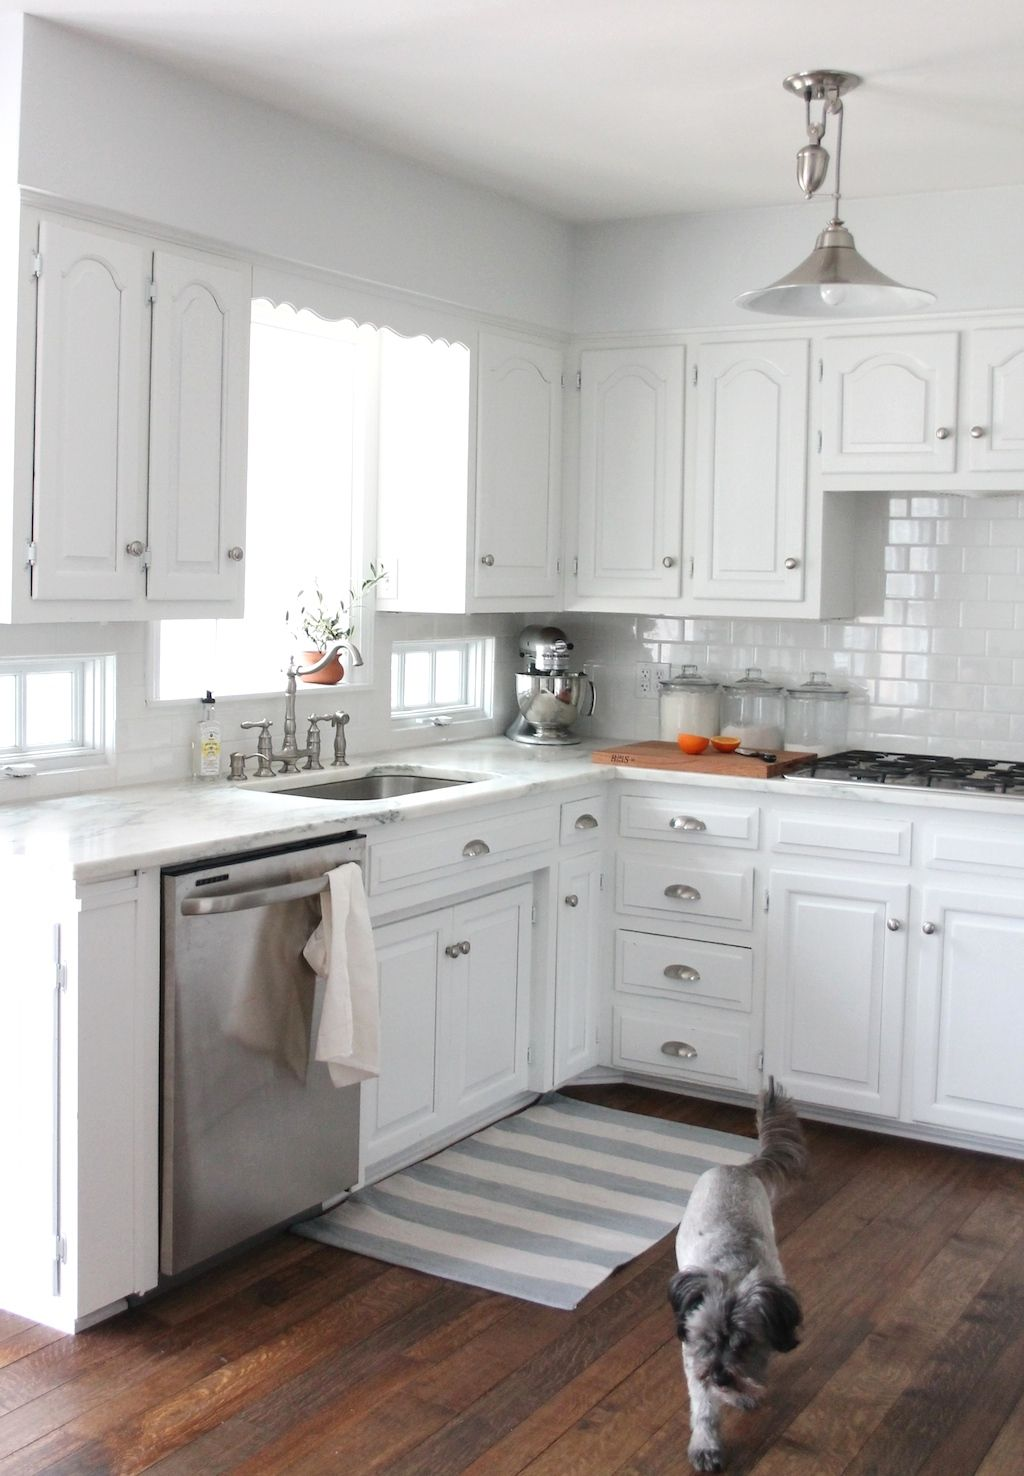 We did it! Our Kitchen Remodel | http://julieblanner.com/our-kitchen ...